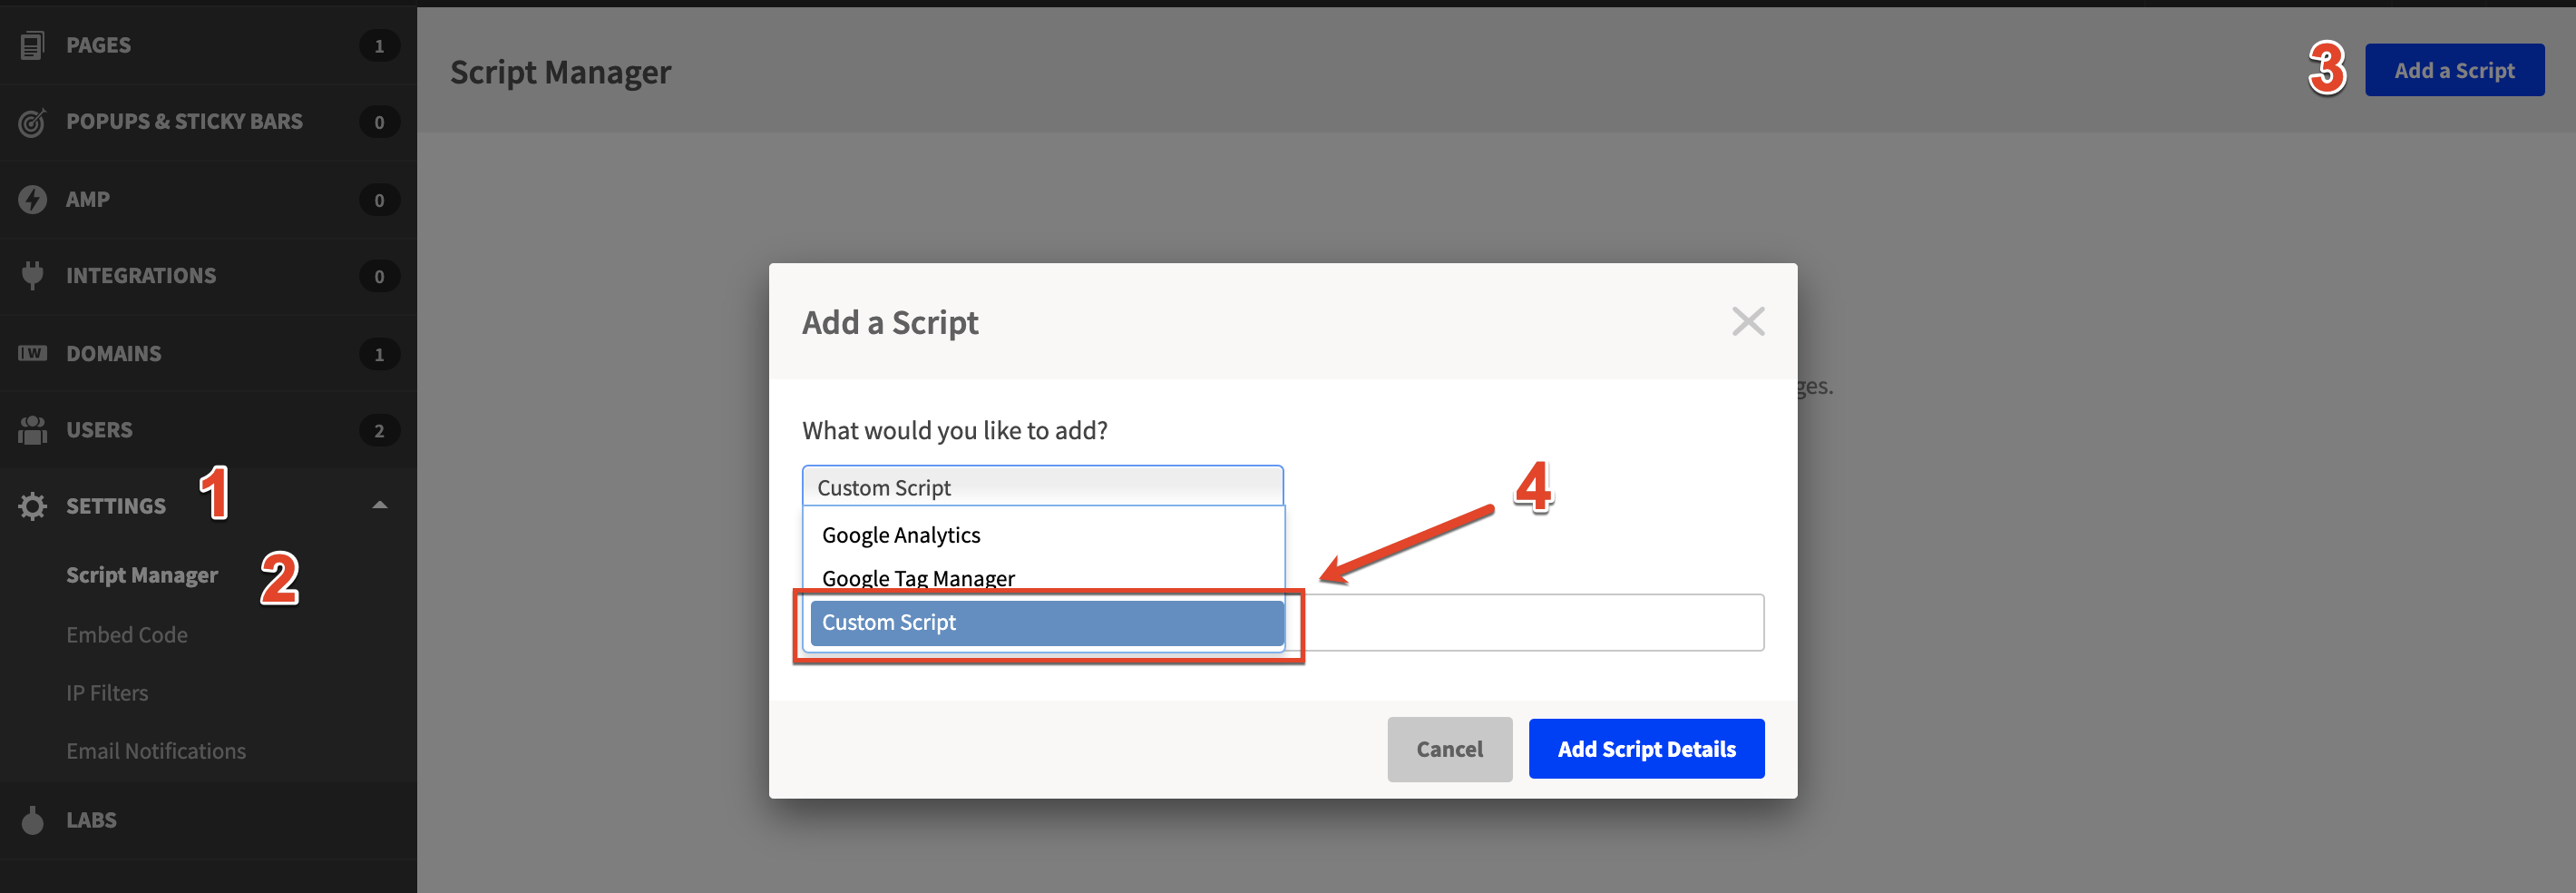 how-to-add-a-custom-script-with-script-manager